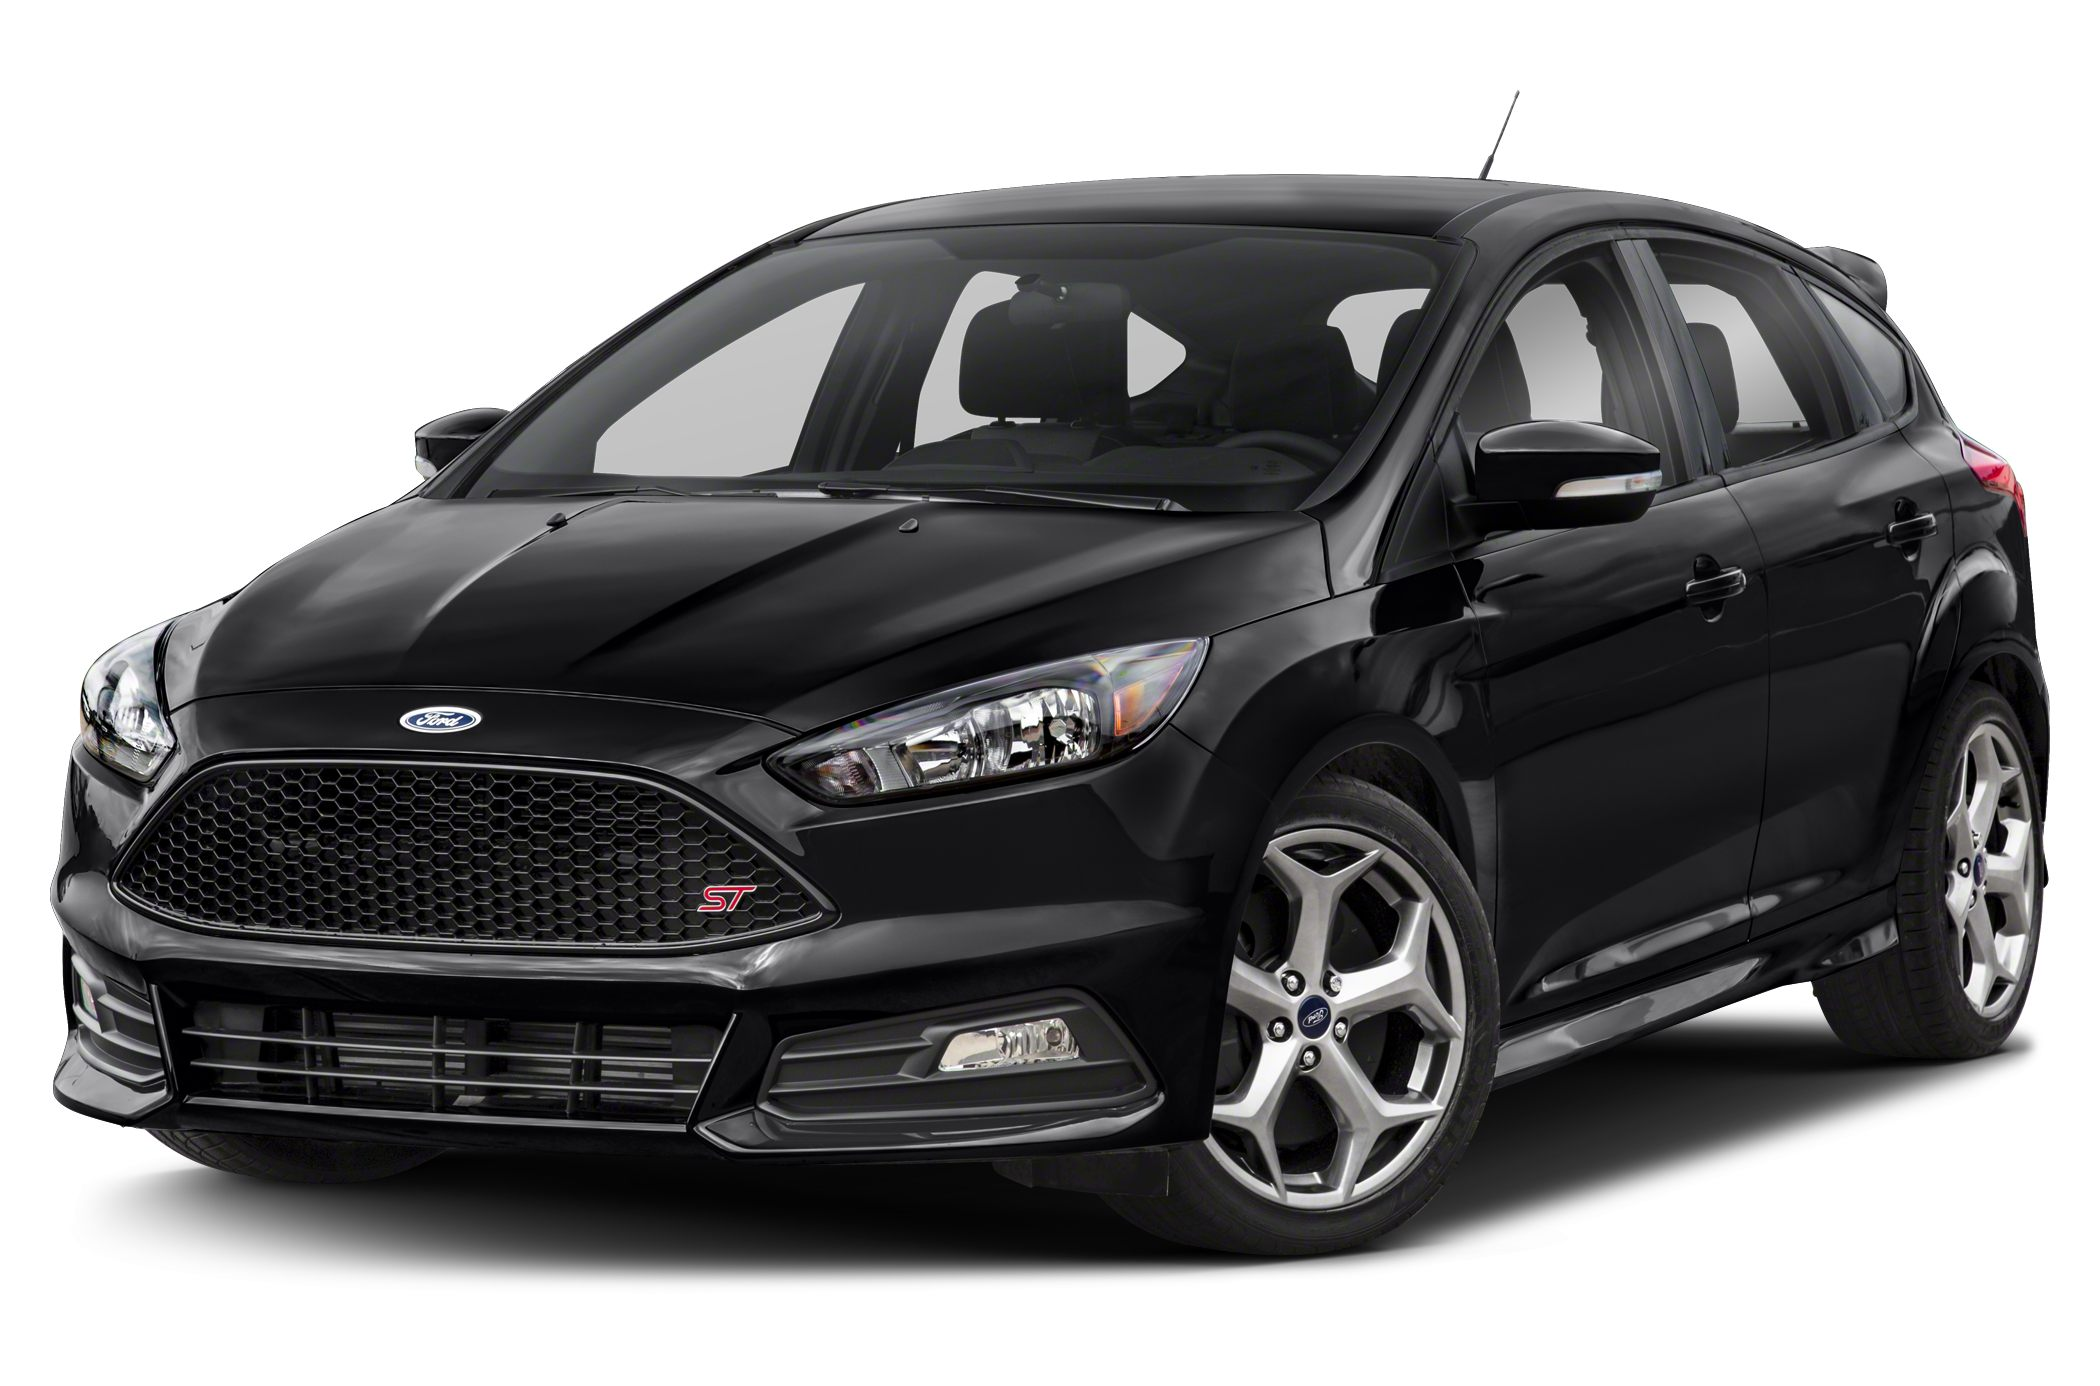 2018 Ford Focus St Pricing And Specs